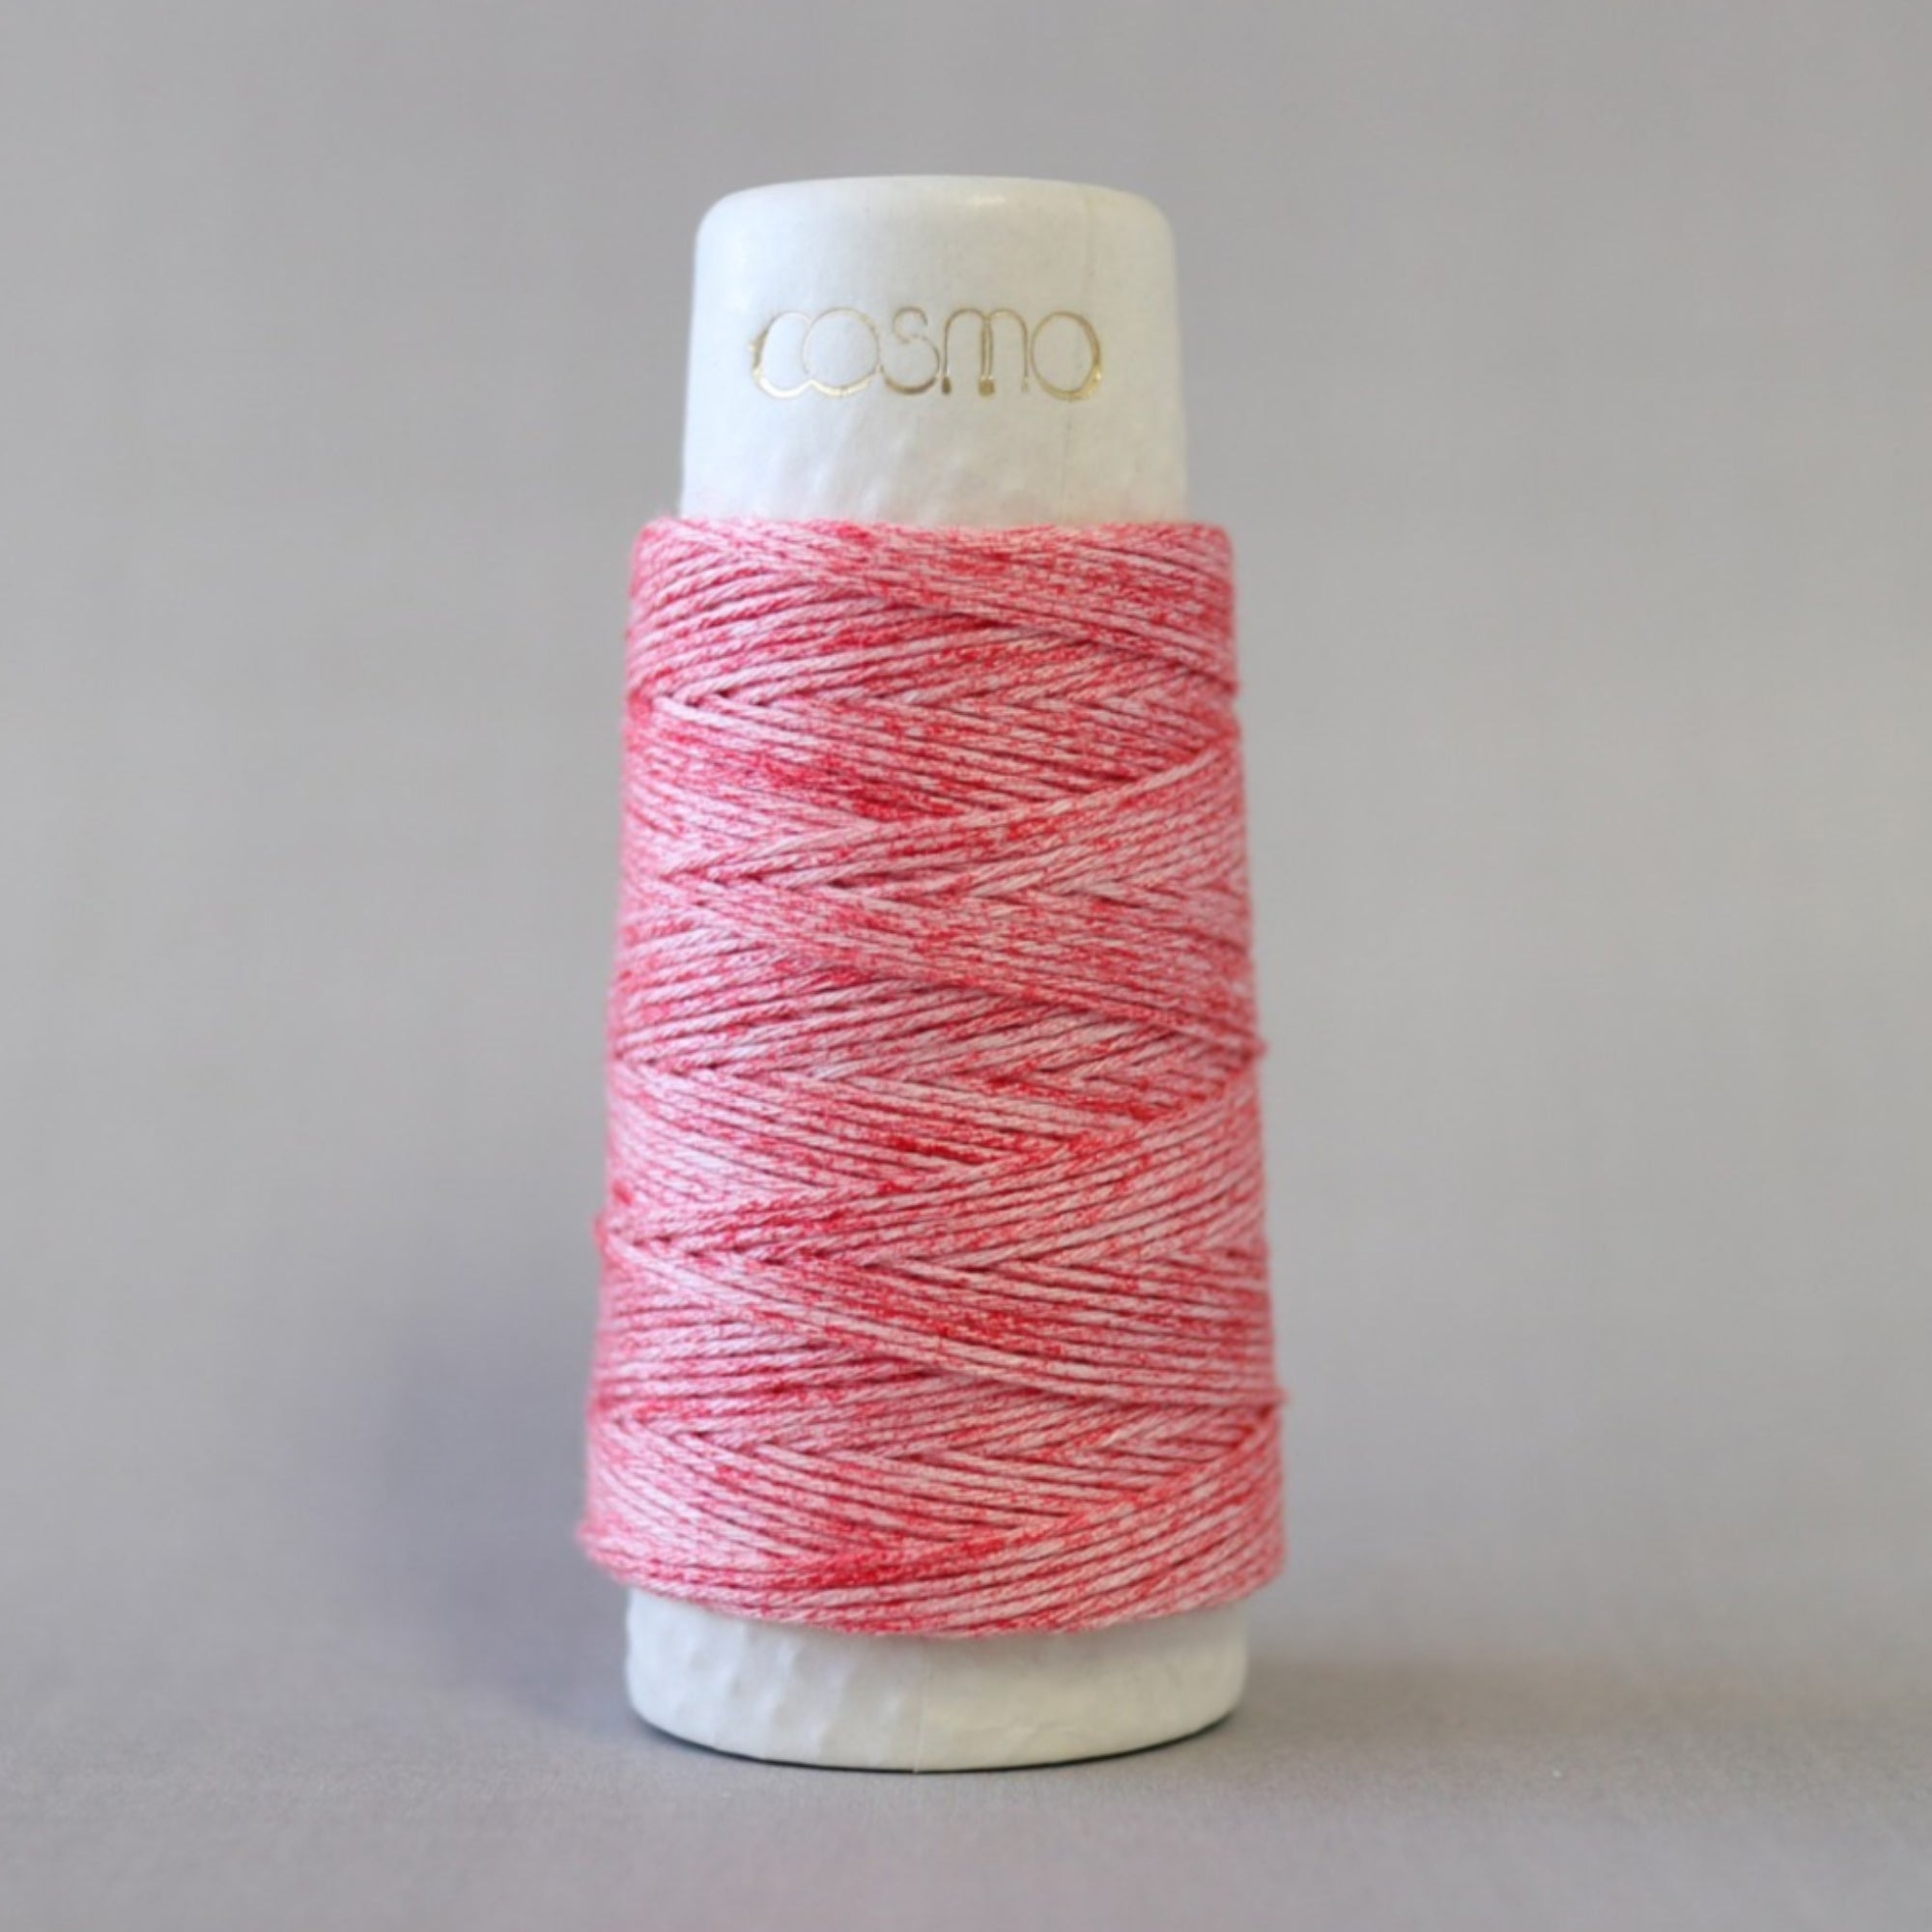 COSMO Hidamari Sashiko Thread - Strawberry Milk (#201) Sashiko - Snuggly Monkey